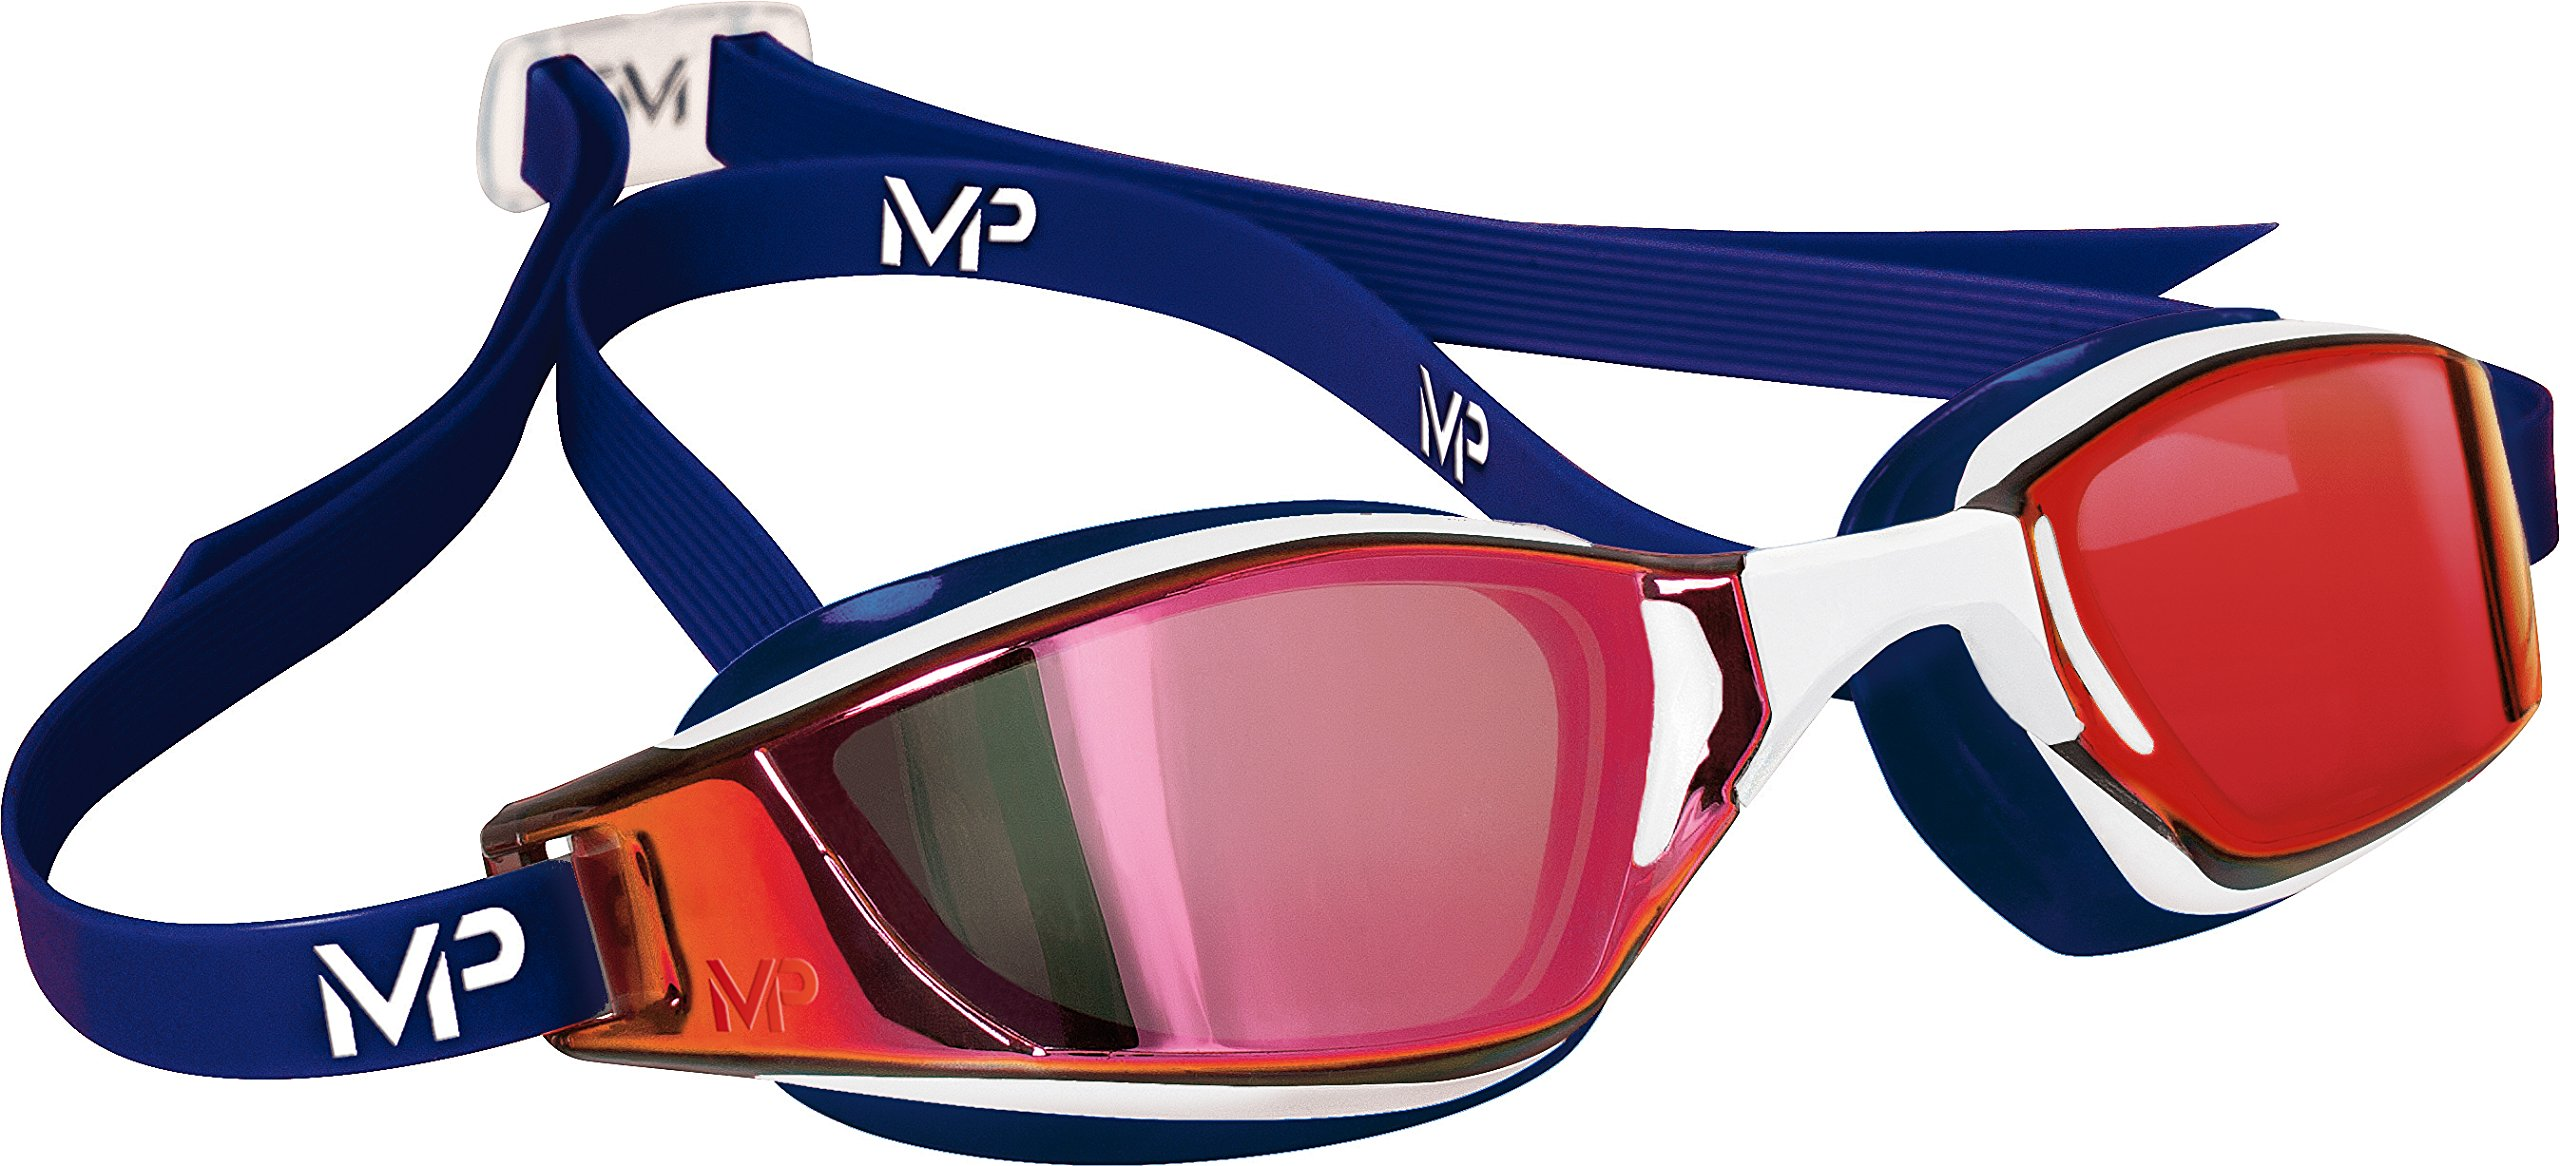 MP Michael Phelps Xceed (6) Goggle, Blue/White